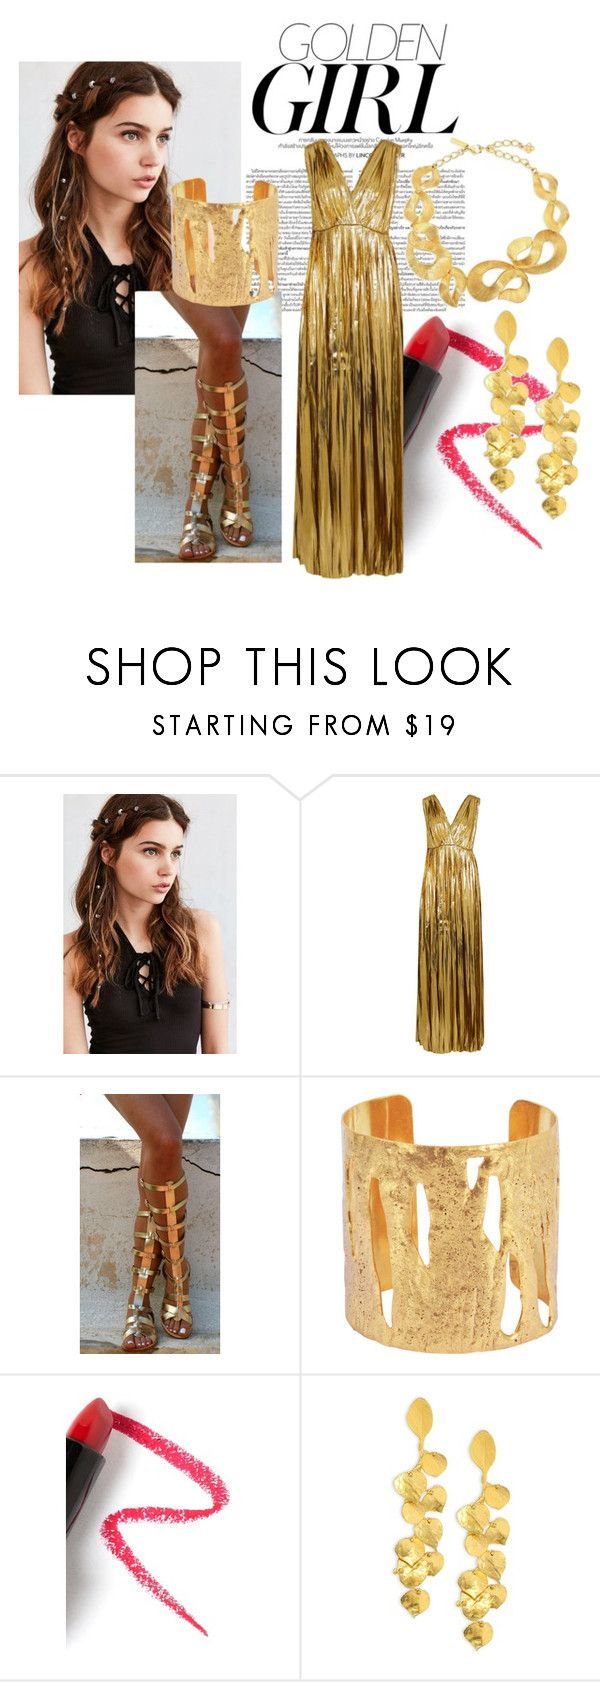 """""""Golden Girl"""" by gi-so ❤ liked on Polyvore featuring Murphy, REGALROSE, Mes Demoiselles..., Ancient Greek Sandals, Sylvia Toledano, Lapcos, Kenneth Jay Lane, Oscar de la Renta, Summer and 40"""